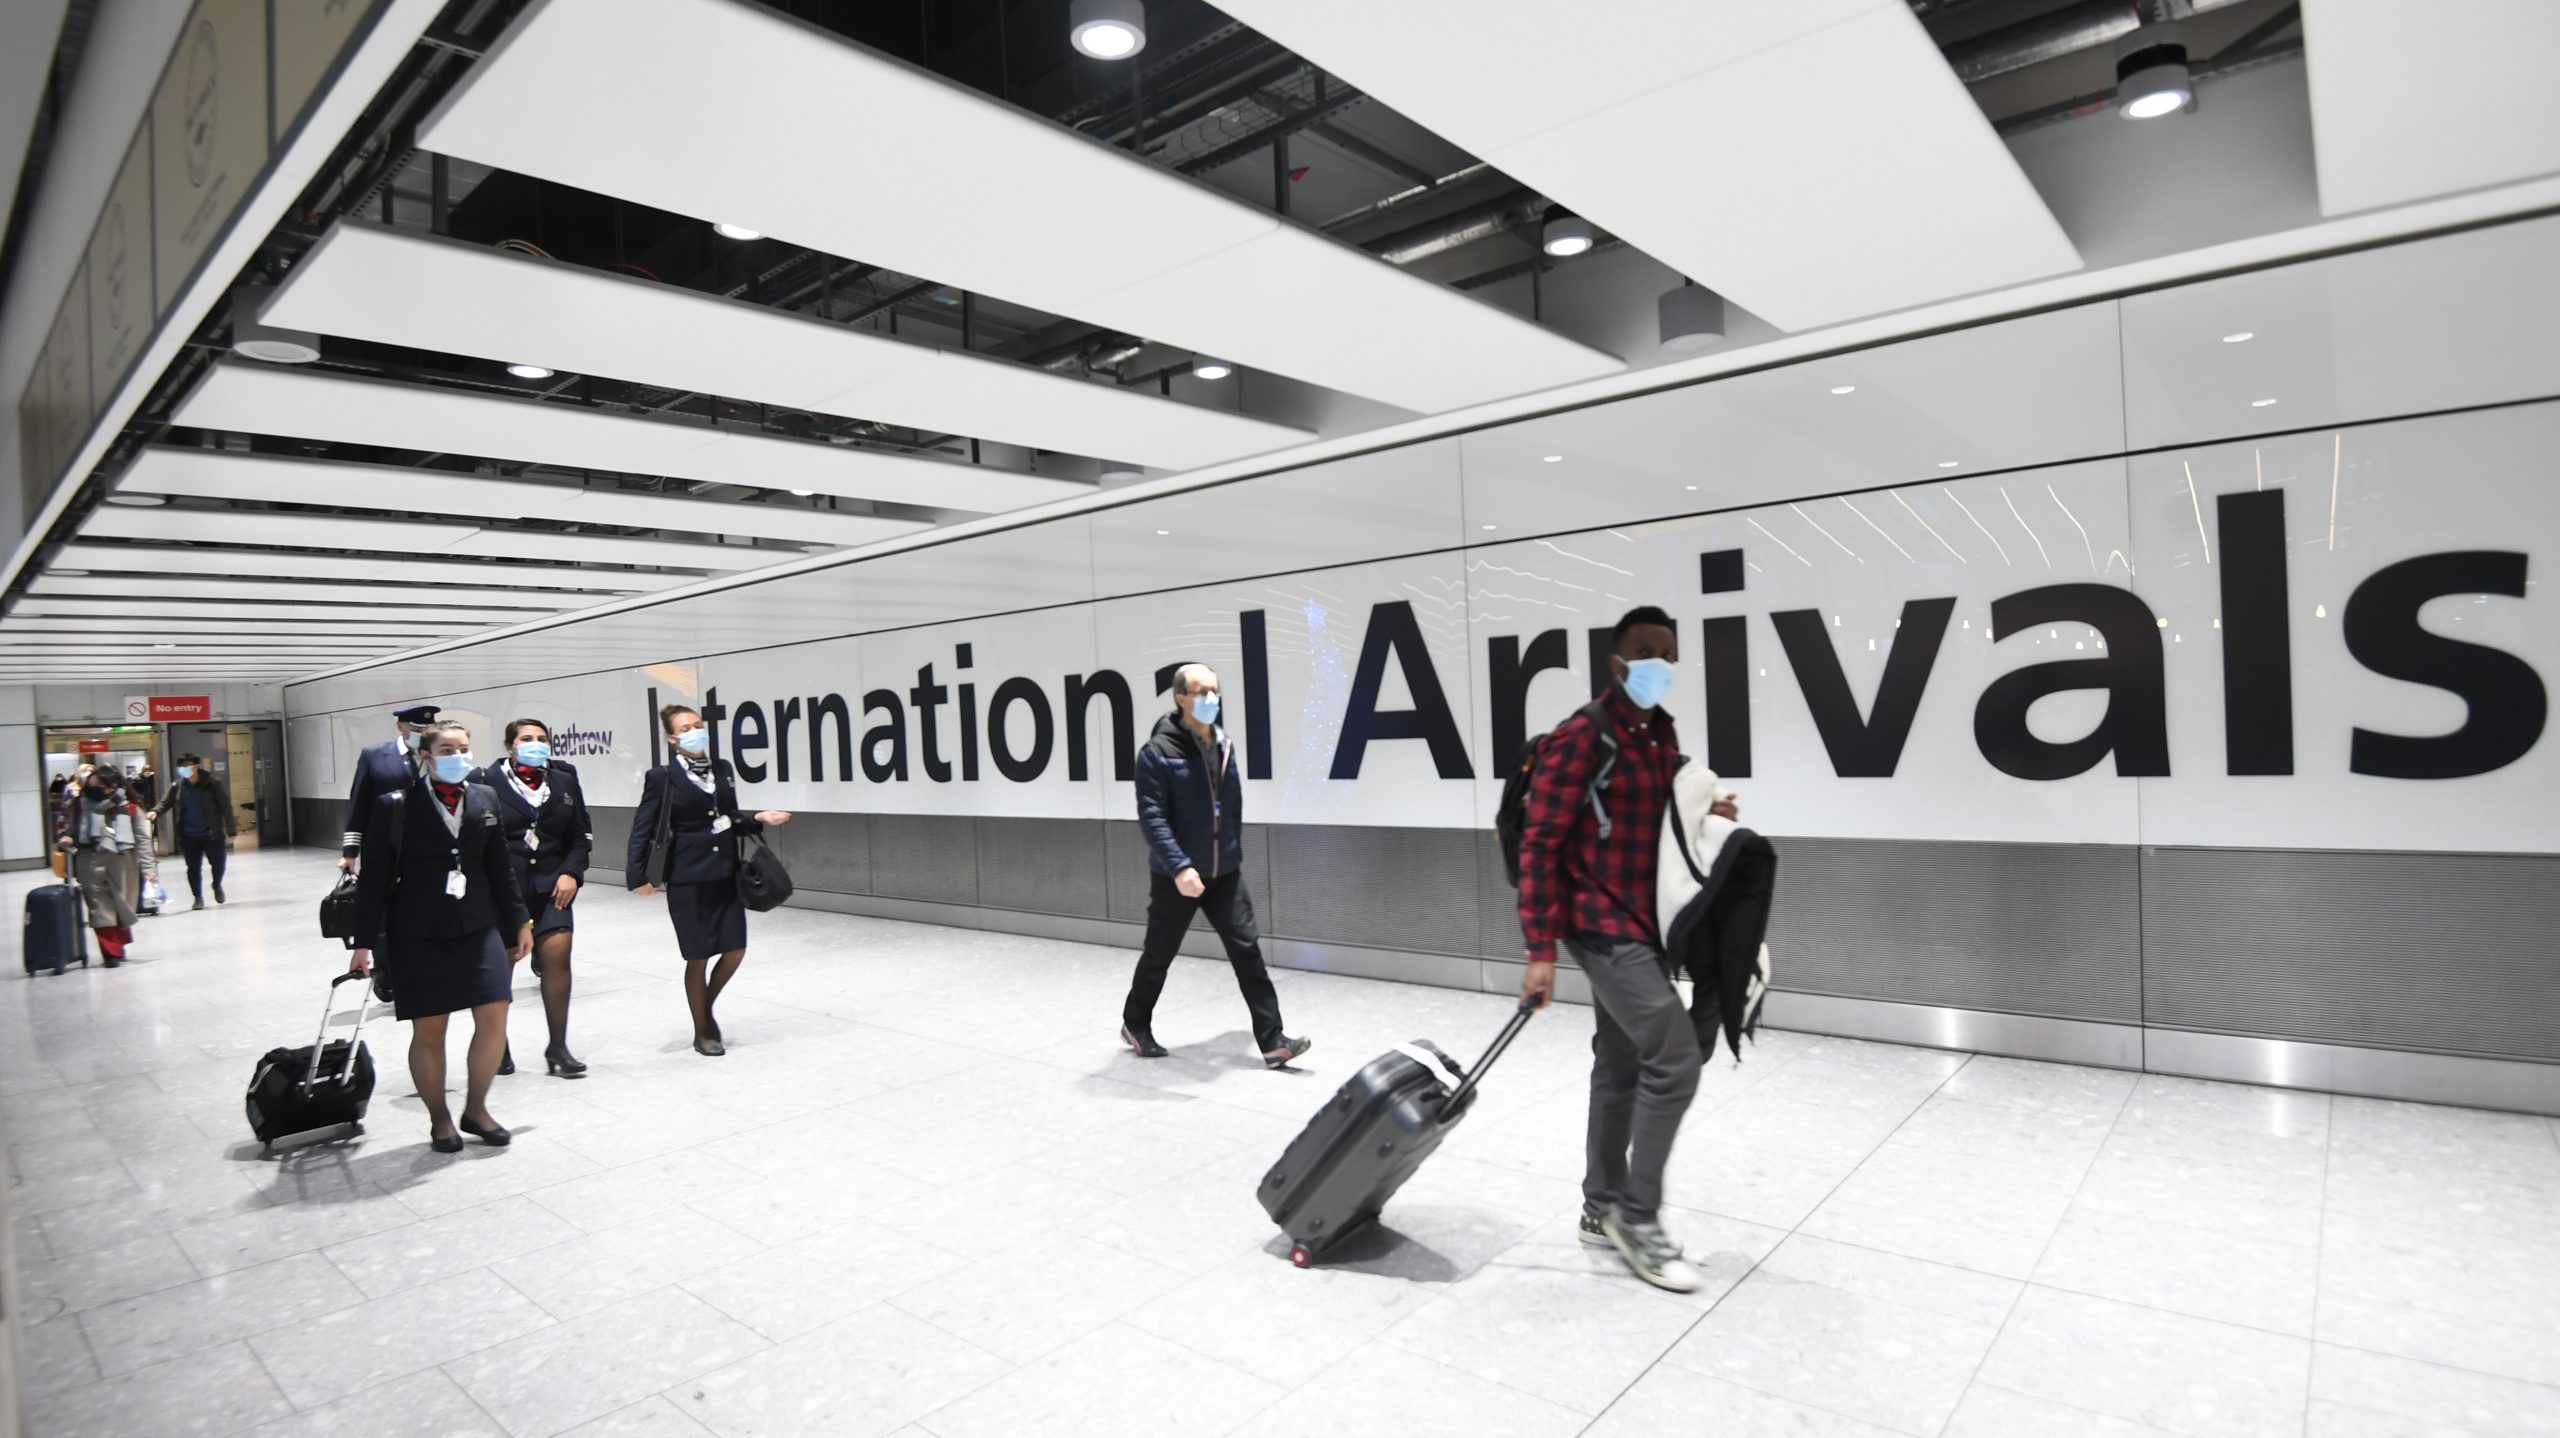 Passengers walking into arrivals at Heathrow airport.